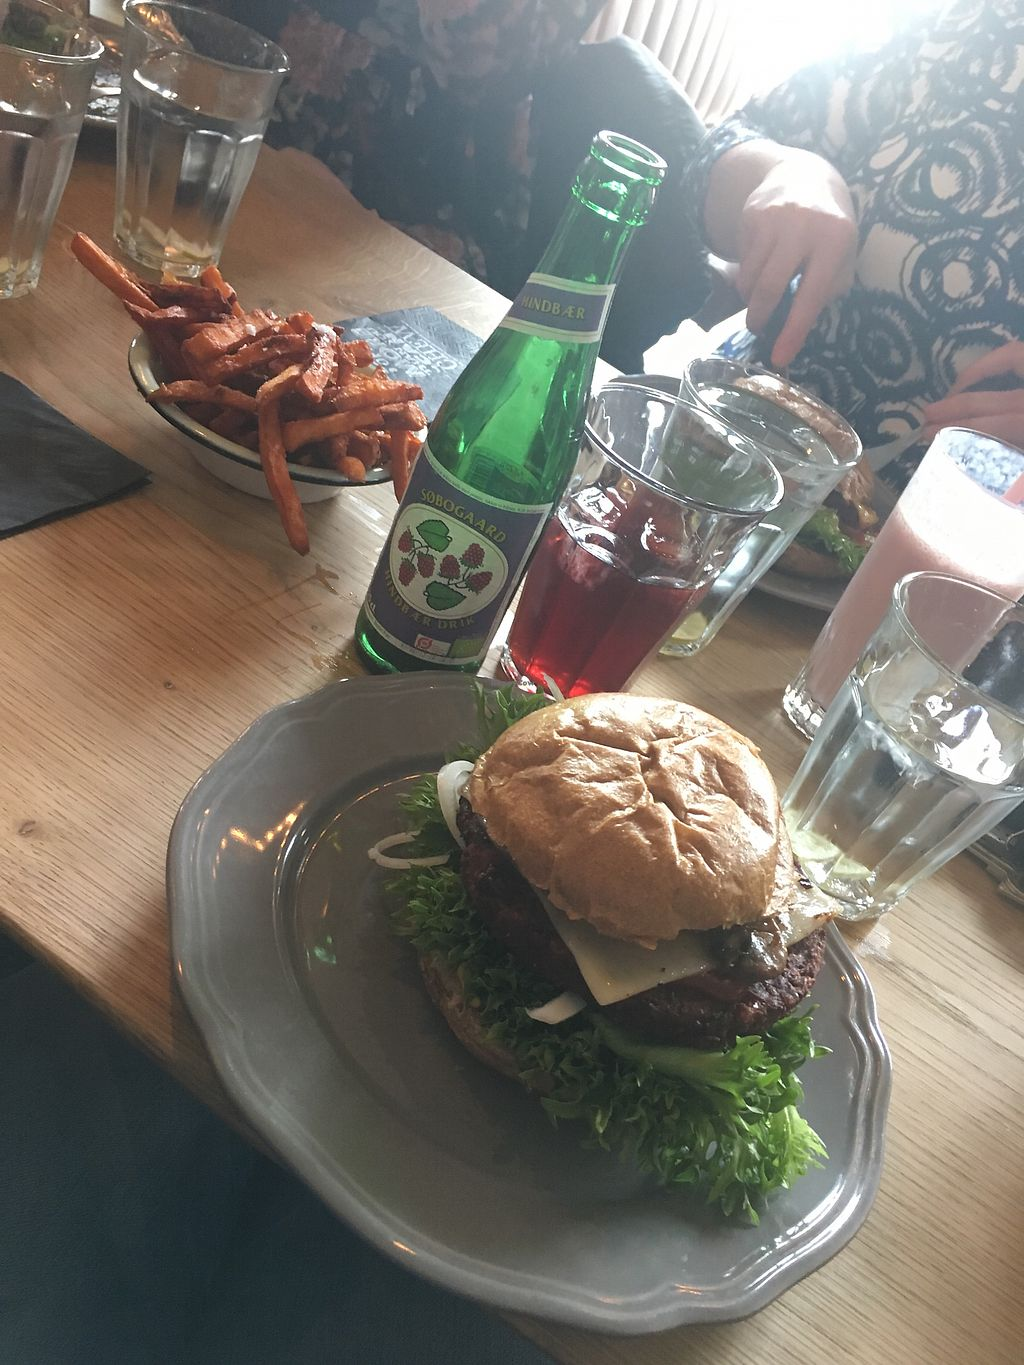 """Photo of Halifax Hillerød  by <a href=""""/members/profile/IdaJohansen"""">IdaJohansen</a> <br/>Vegan burgers and sweet potato fries fries <br/> March 10, 2018  - <a href='/contact/abuse/image/114074/368979'>Report</a>"""